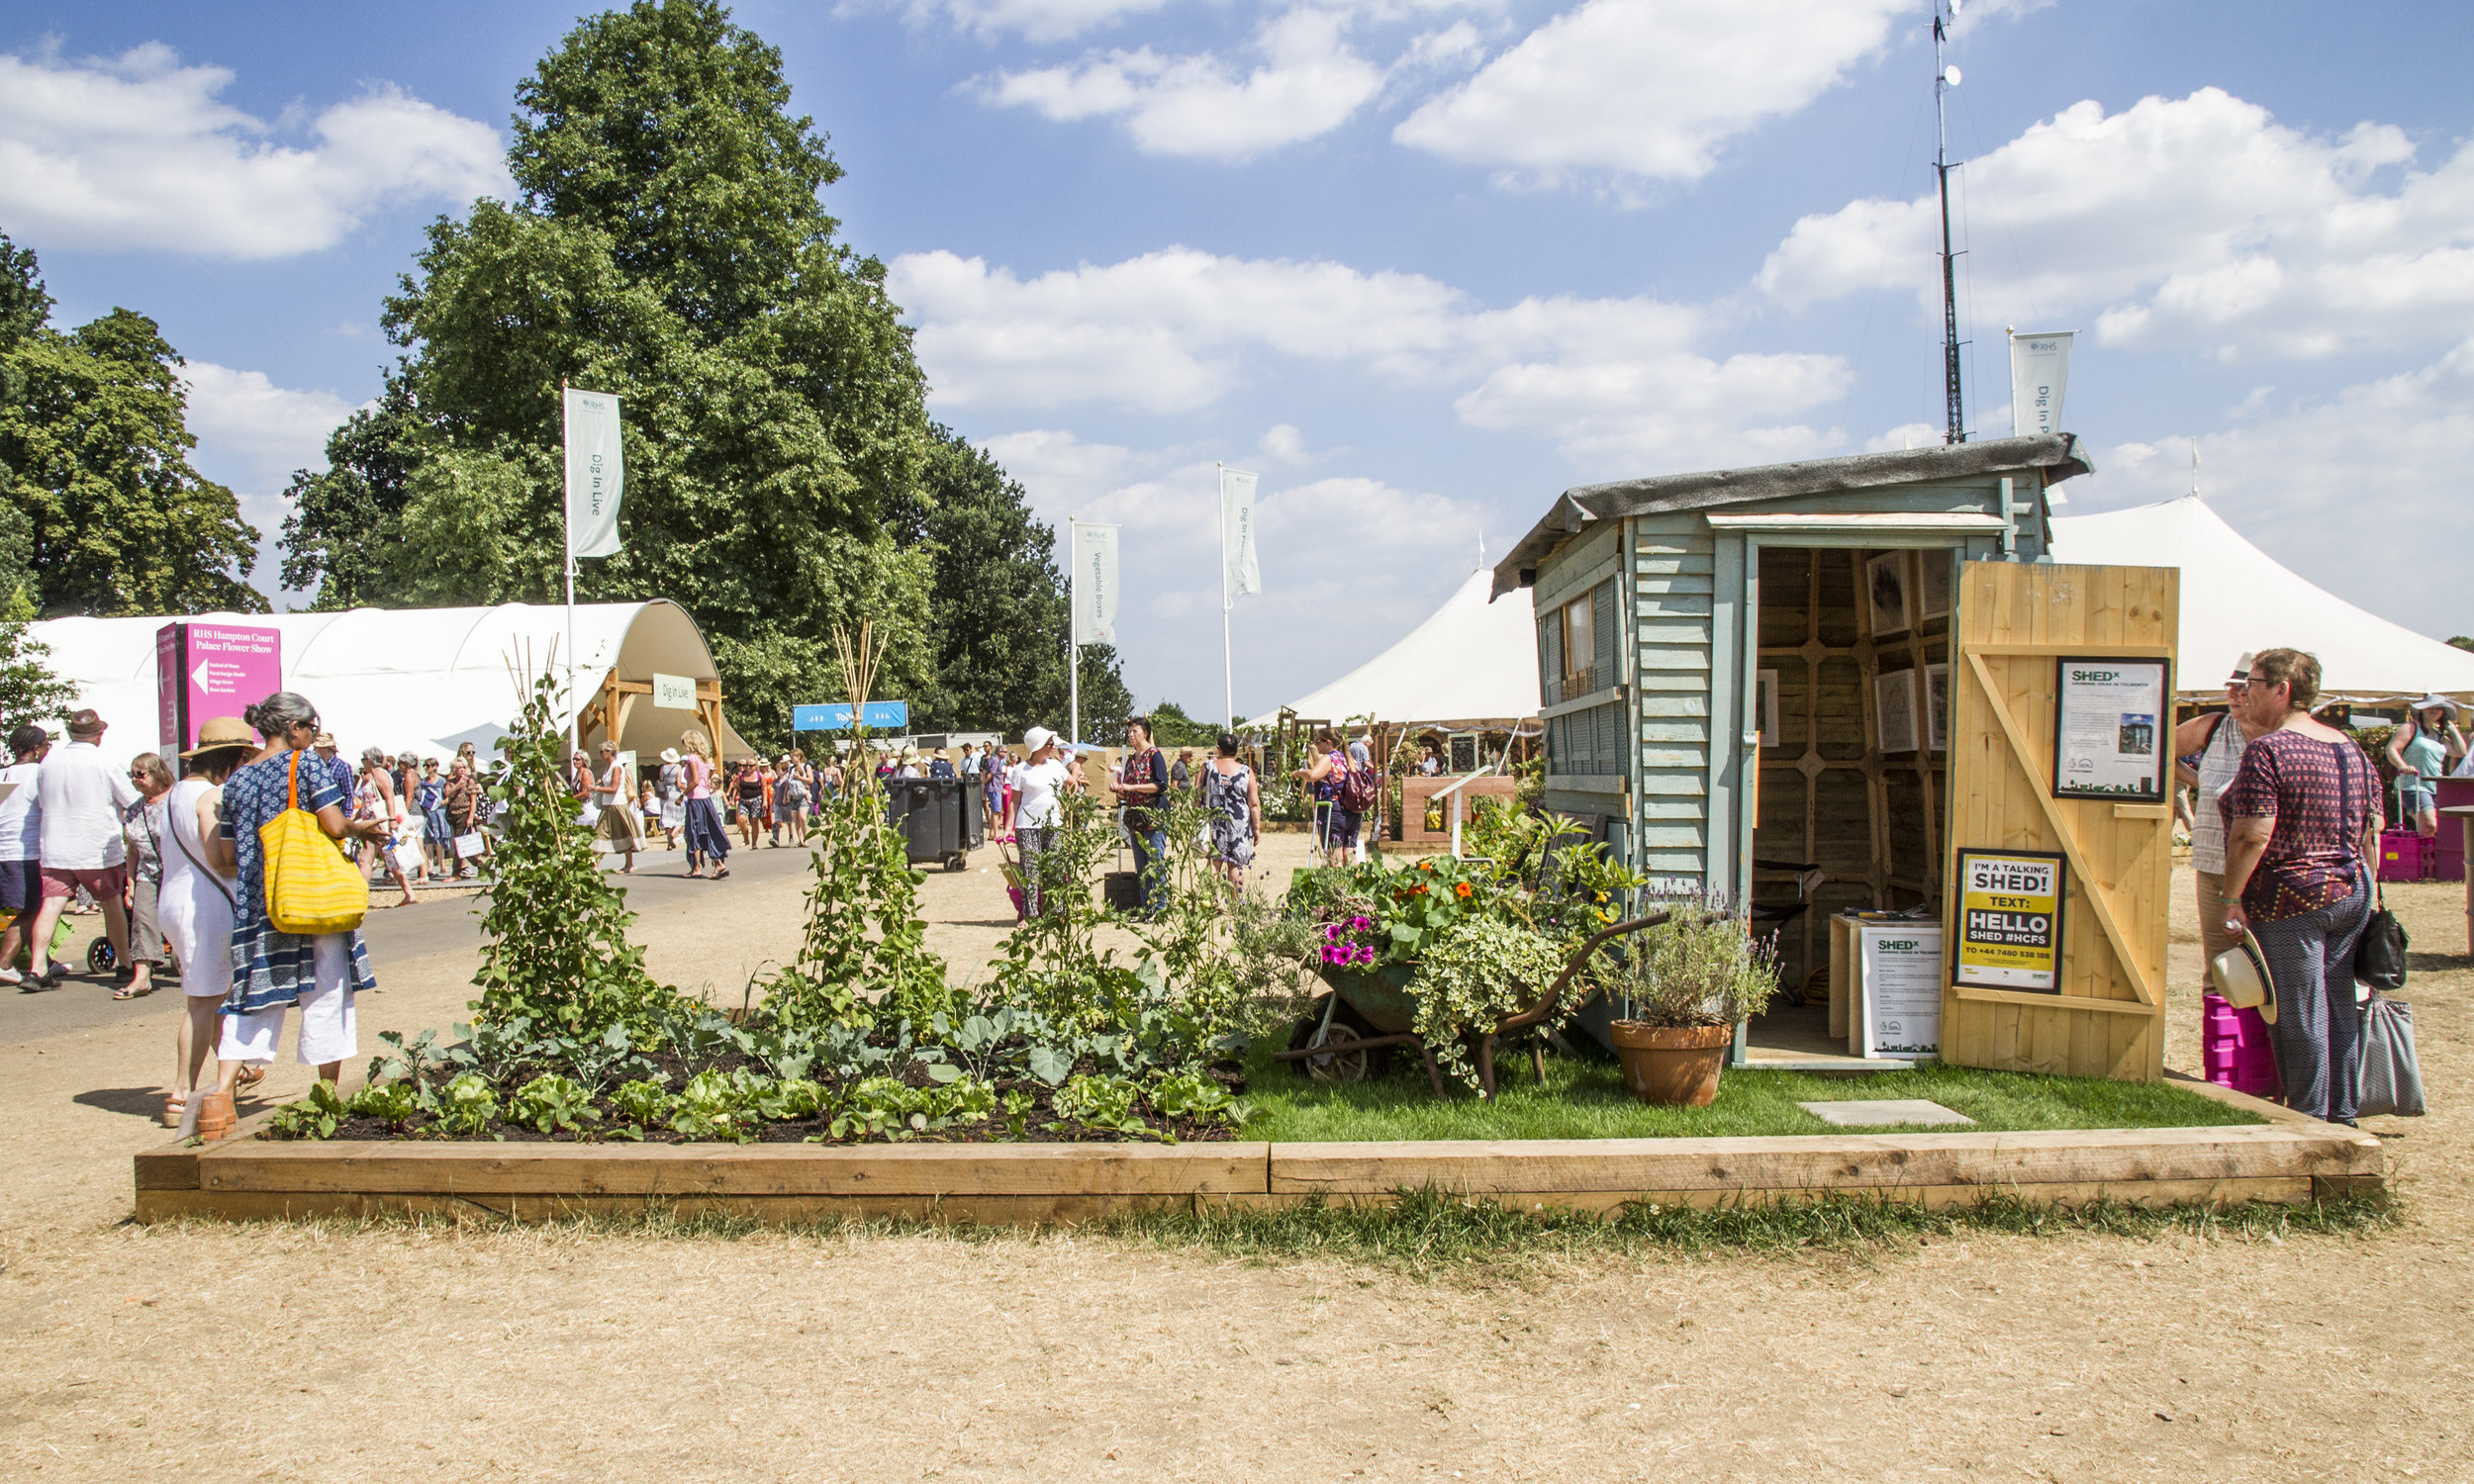 heritage shed in Hampton court.jpg